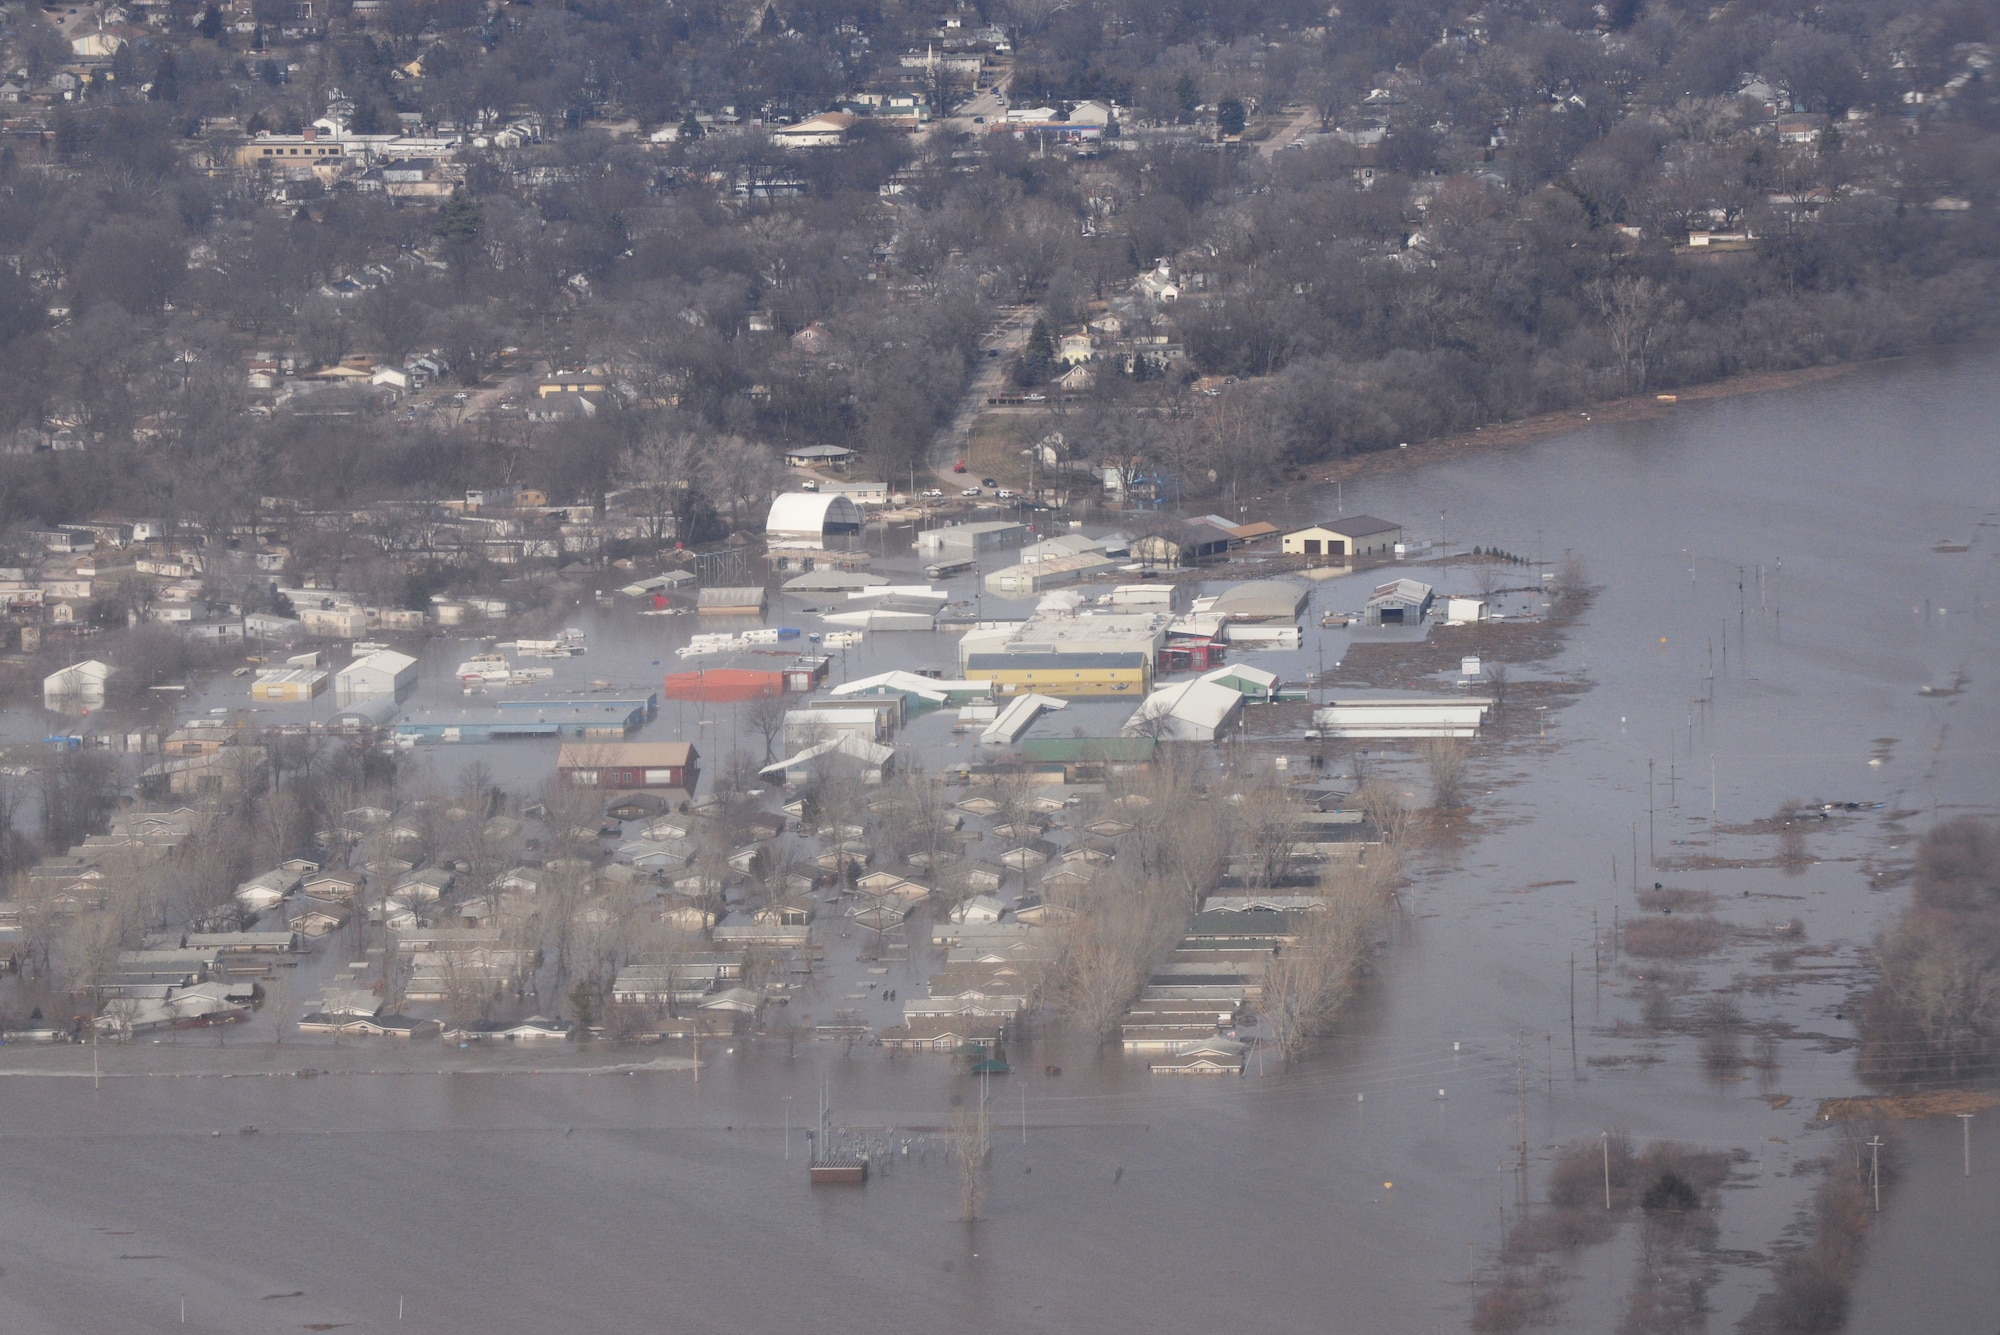 Areas surrounding Offutt Air Force Base stand affected by flood waters March 17, 2019. An increase in water levels of surrounding rivers and waterways caused by record-setting snowfall over the winter in addition to a large drop in air pressure caused widespread flooding across the state of Nebraska. (U.S. Air Force photo by TSgt. Rachelle Blake)